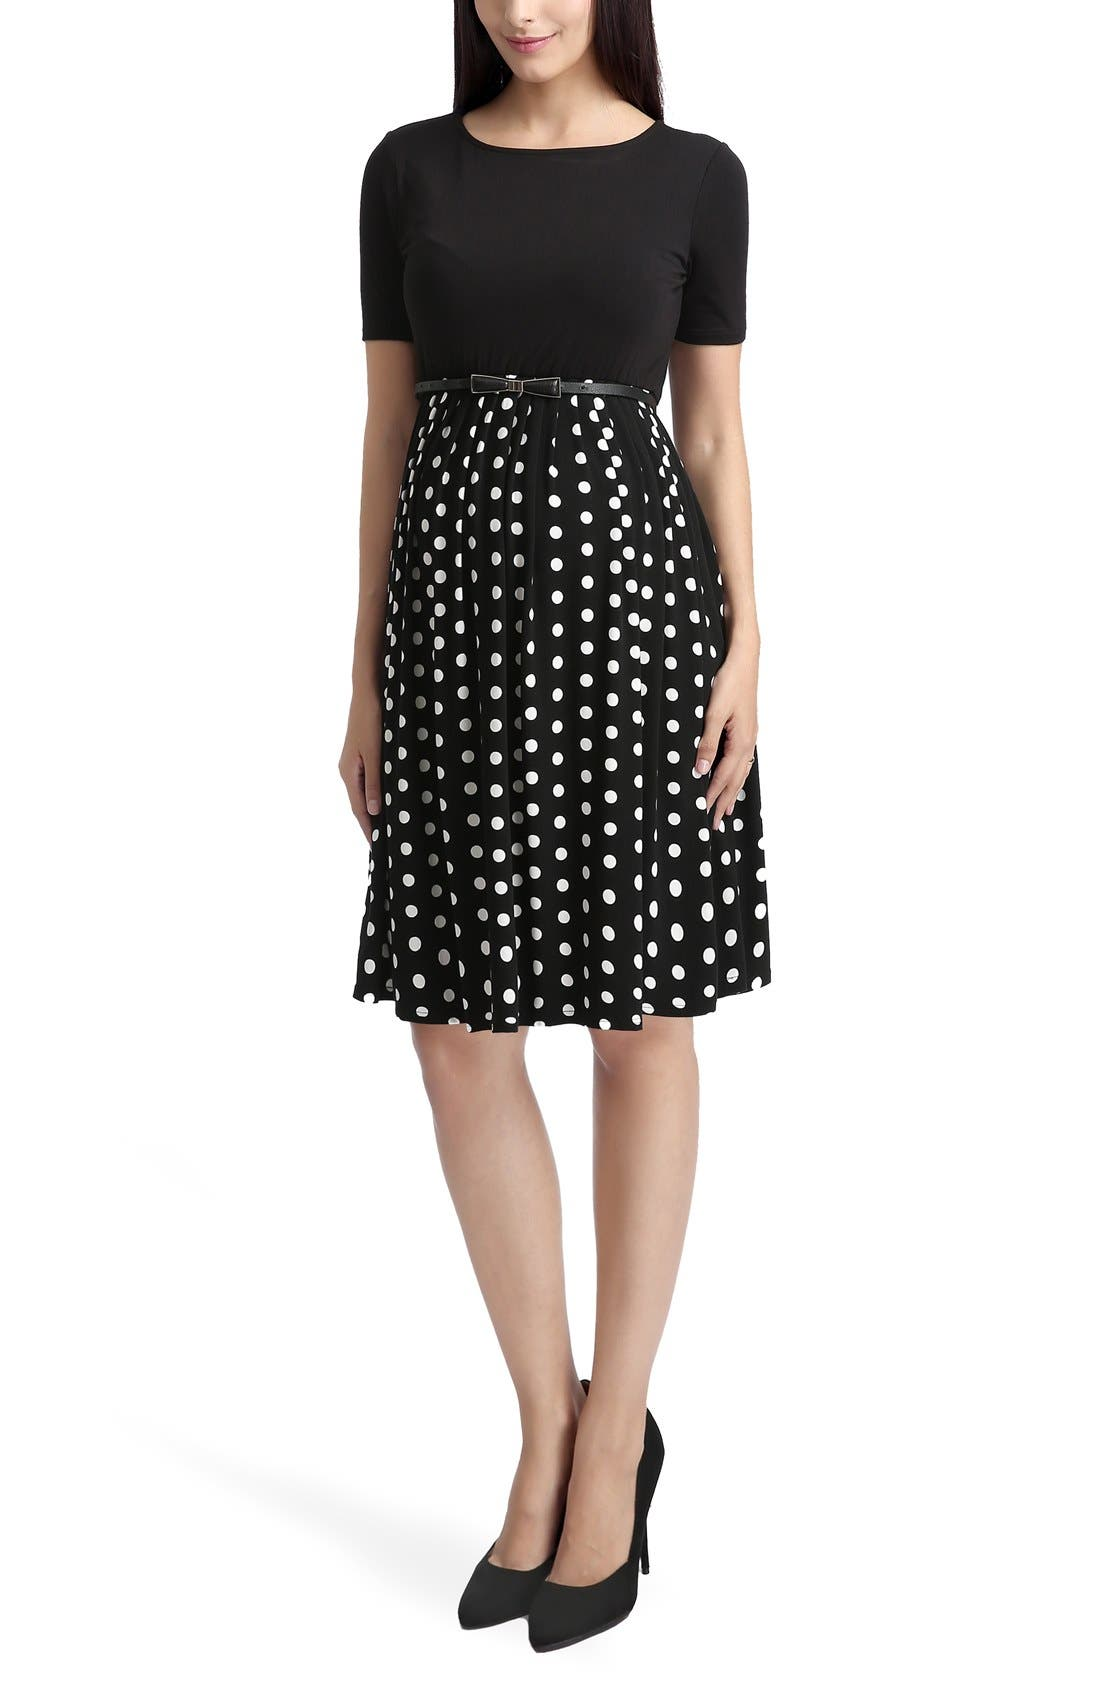 KIMI AND KAI 'Emmy' Polka Dot Maternity Dress